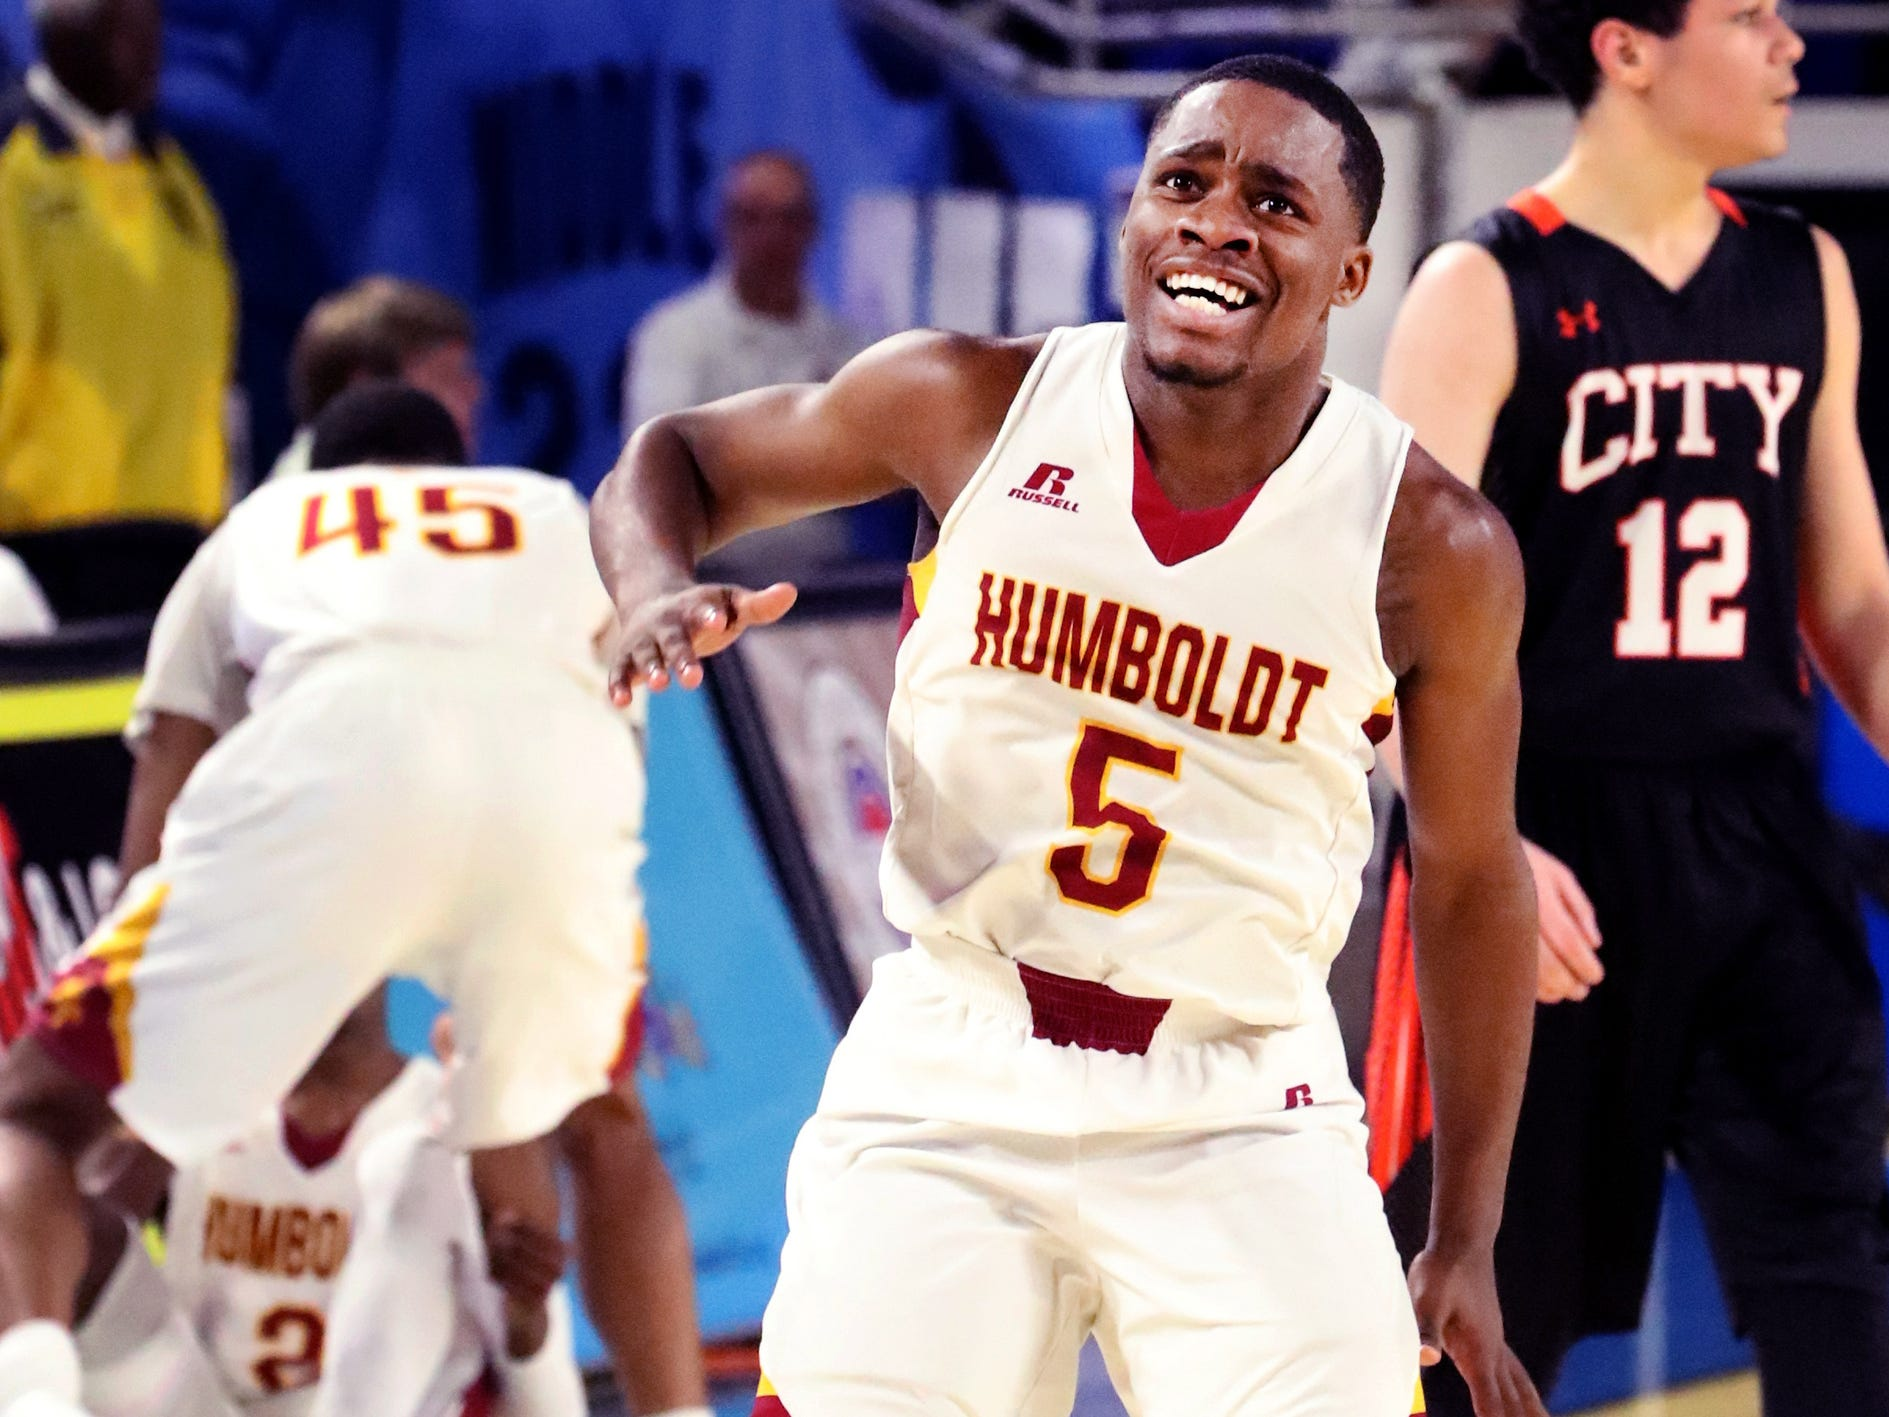 Humboldt's Montrez Ward (5) celebrates a call and Humboldt getting the ball back from Fayetteville during the quarterfinal round of the TSSAA Class A Boys State Tournament, on Thursday, March 14, 2019, at Murphy Center in Murfreesboro, Tenn.